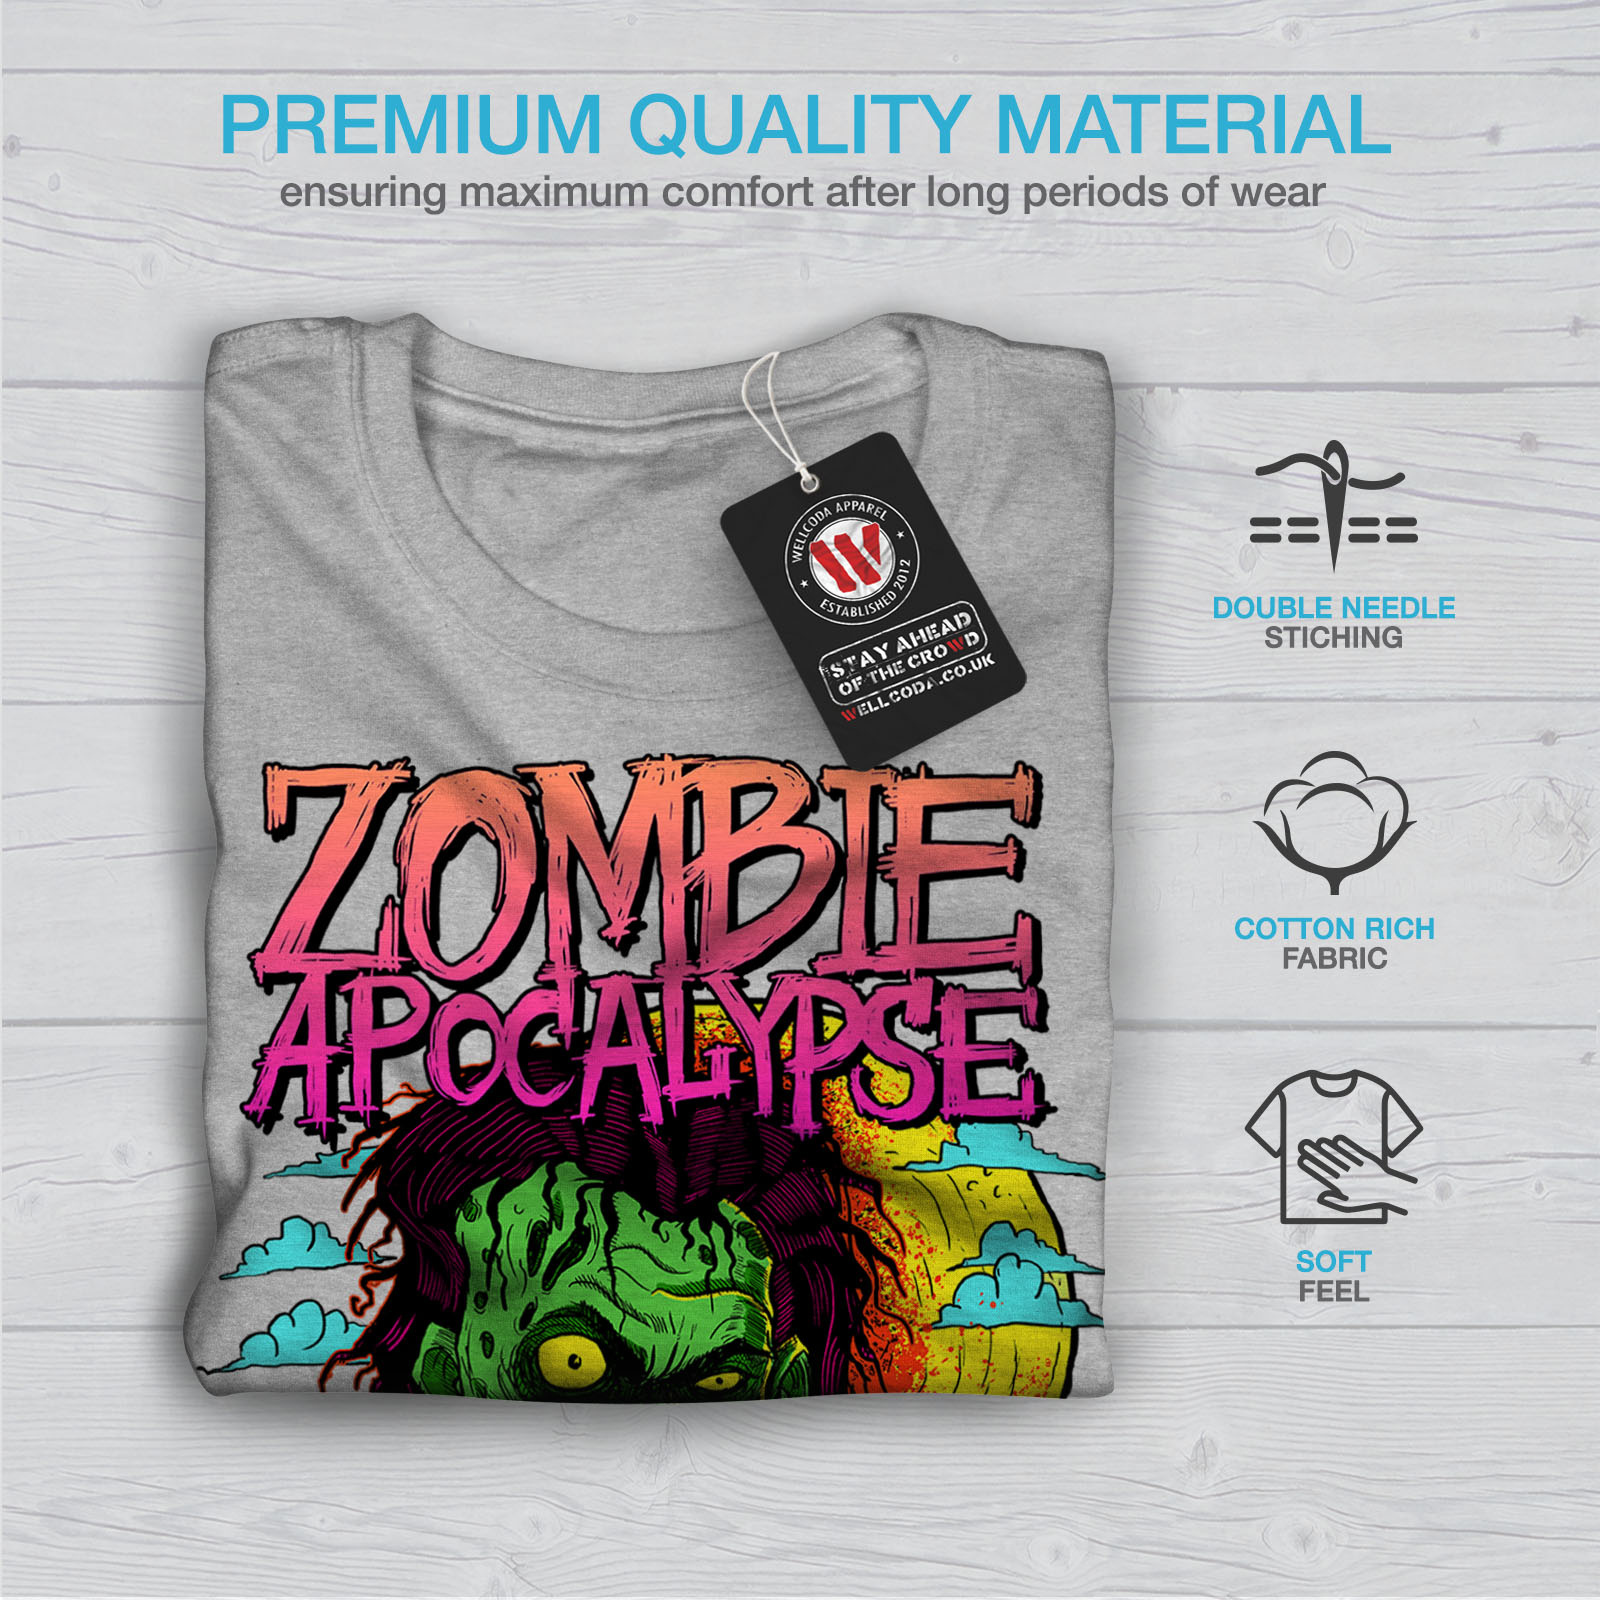 Wellcoda-Zombie-Apocalypse-Horror-Mens-T-shirt-Graphic-Design-Printed-Tee thumbnail 19